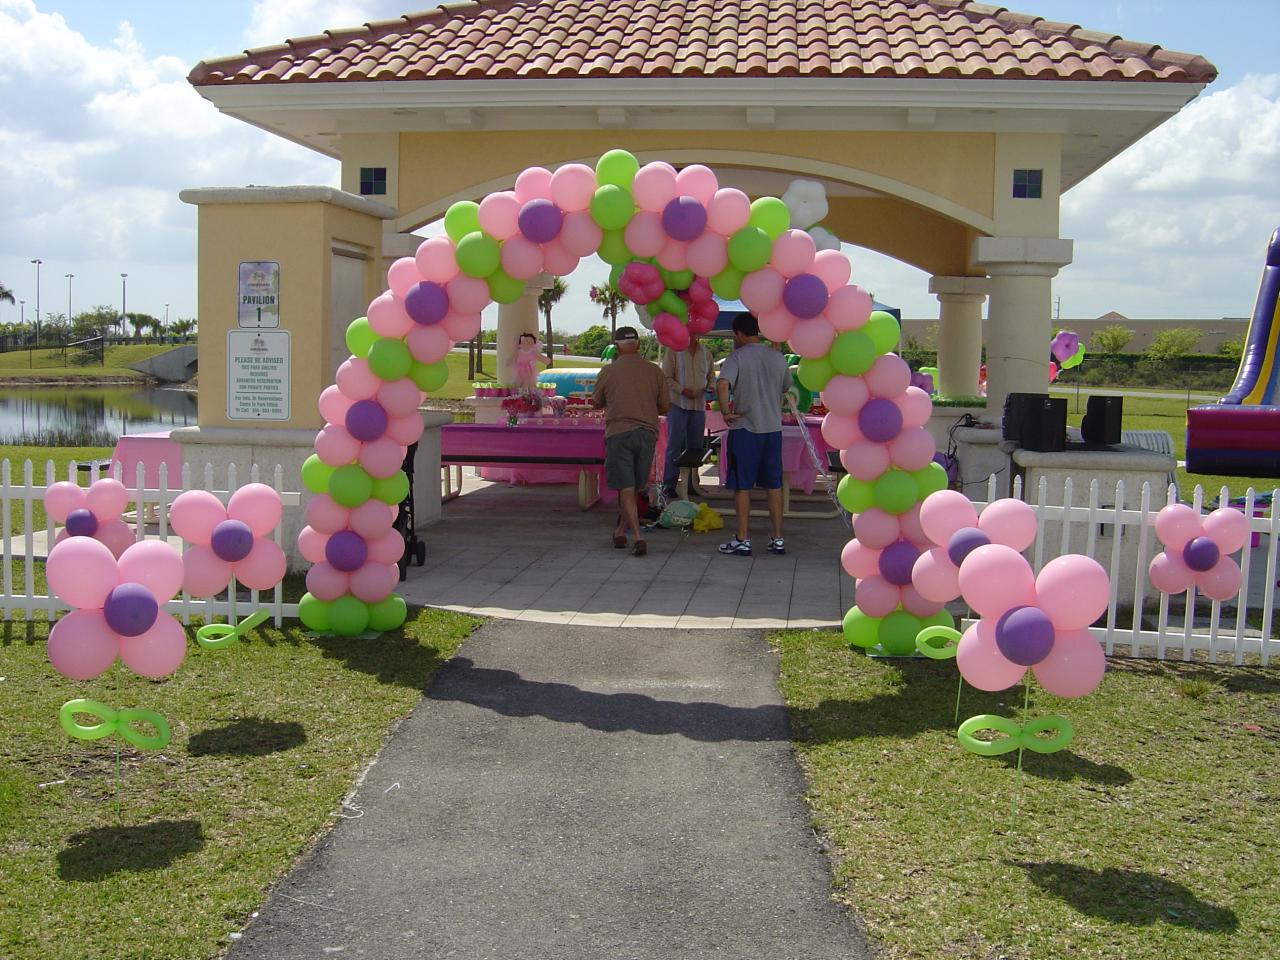 Flowers flowers everywhere balloon that is balloon bling it flowers flowers everywhere izmirmasajfo